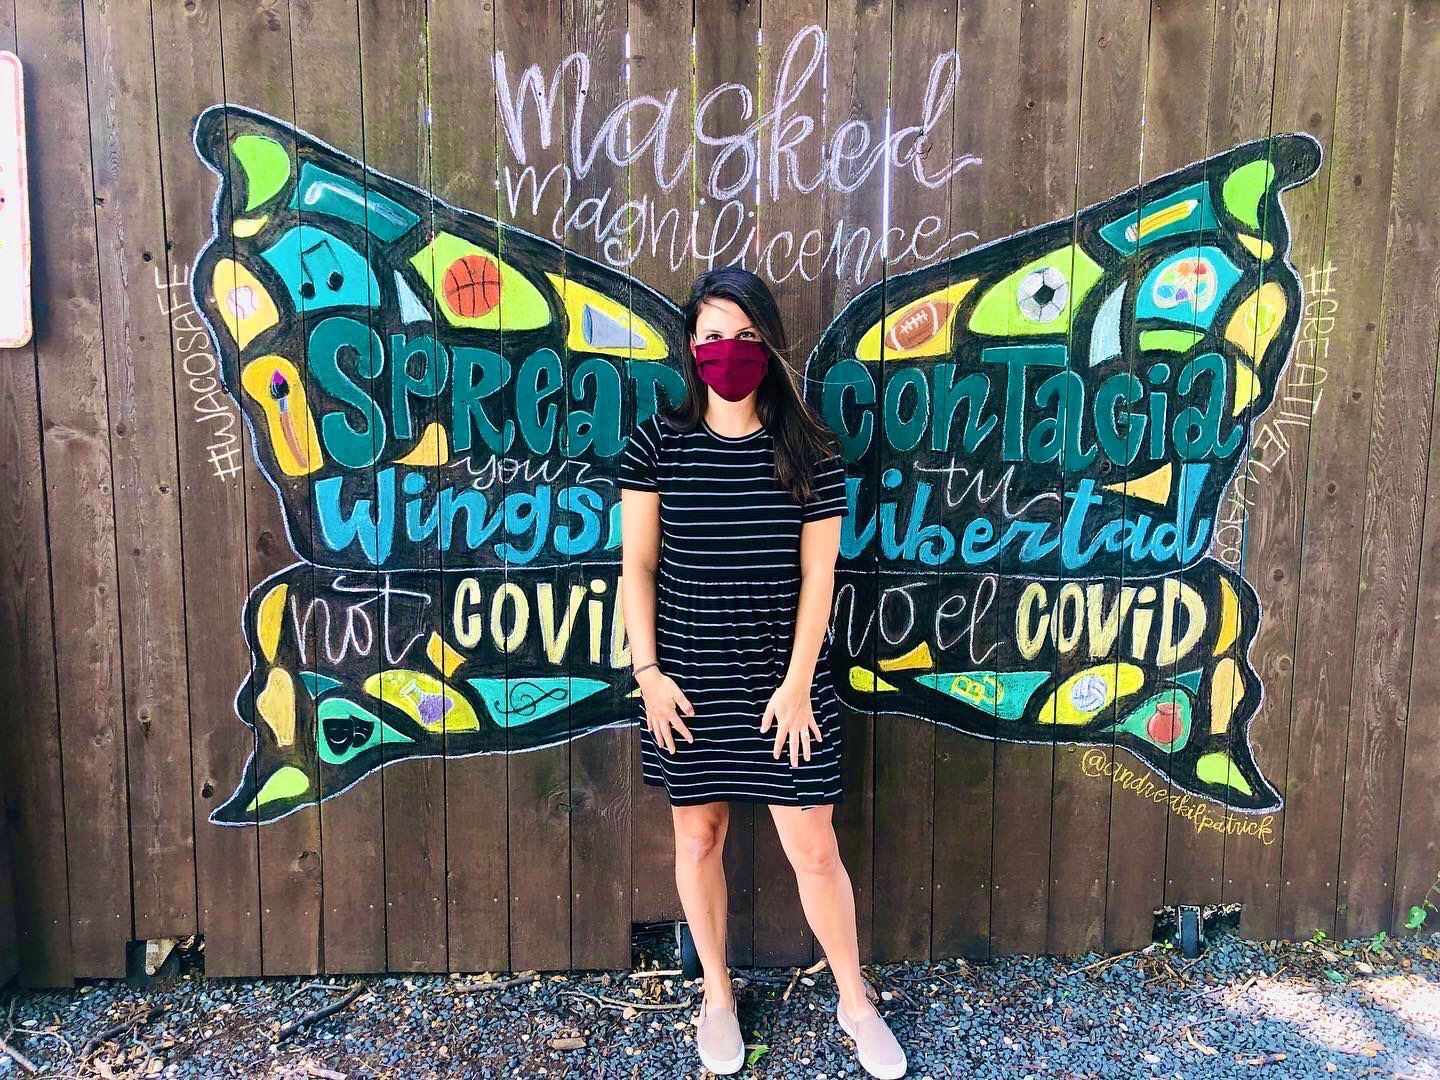 Spread Your Wings not Covid Image